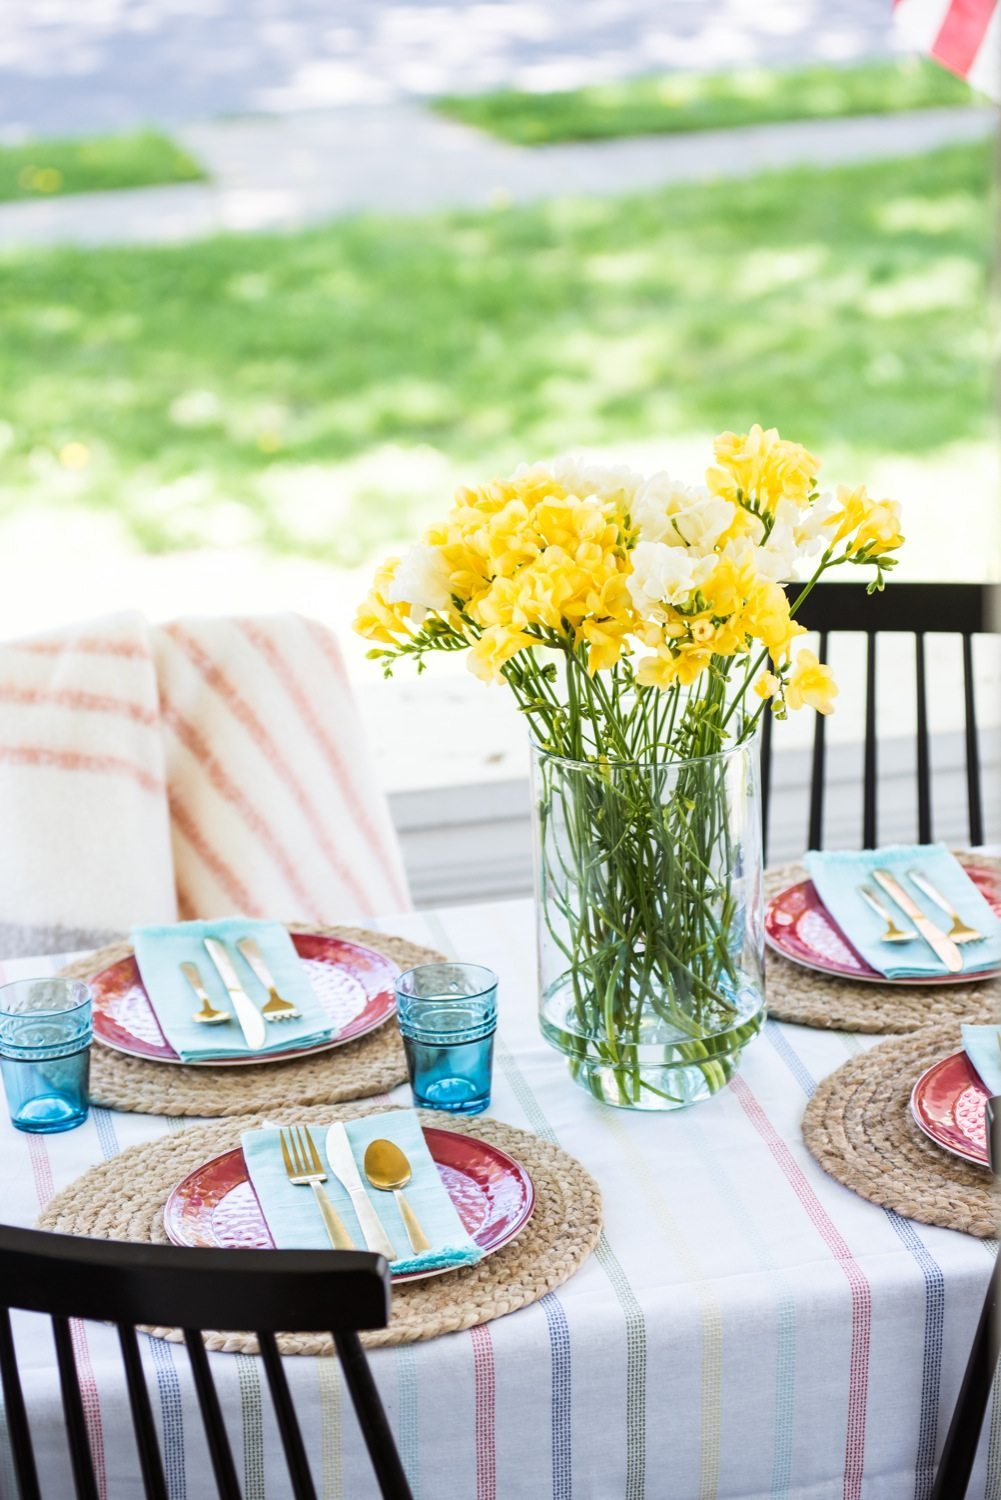 Hosting a Chic Patriotic Picnic | Entertaining ideas, party ideas, picnic ideas and more from @cydconverse